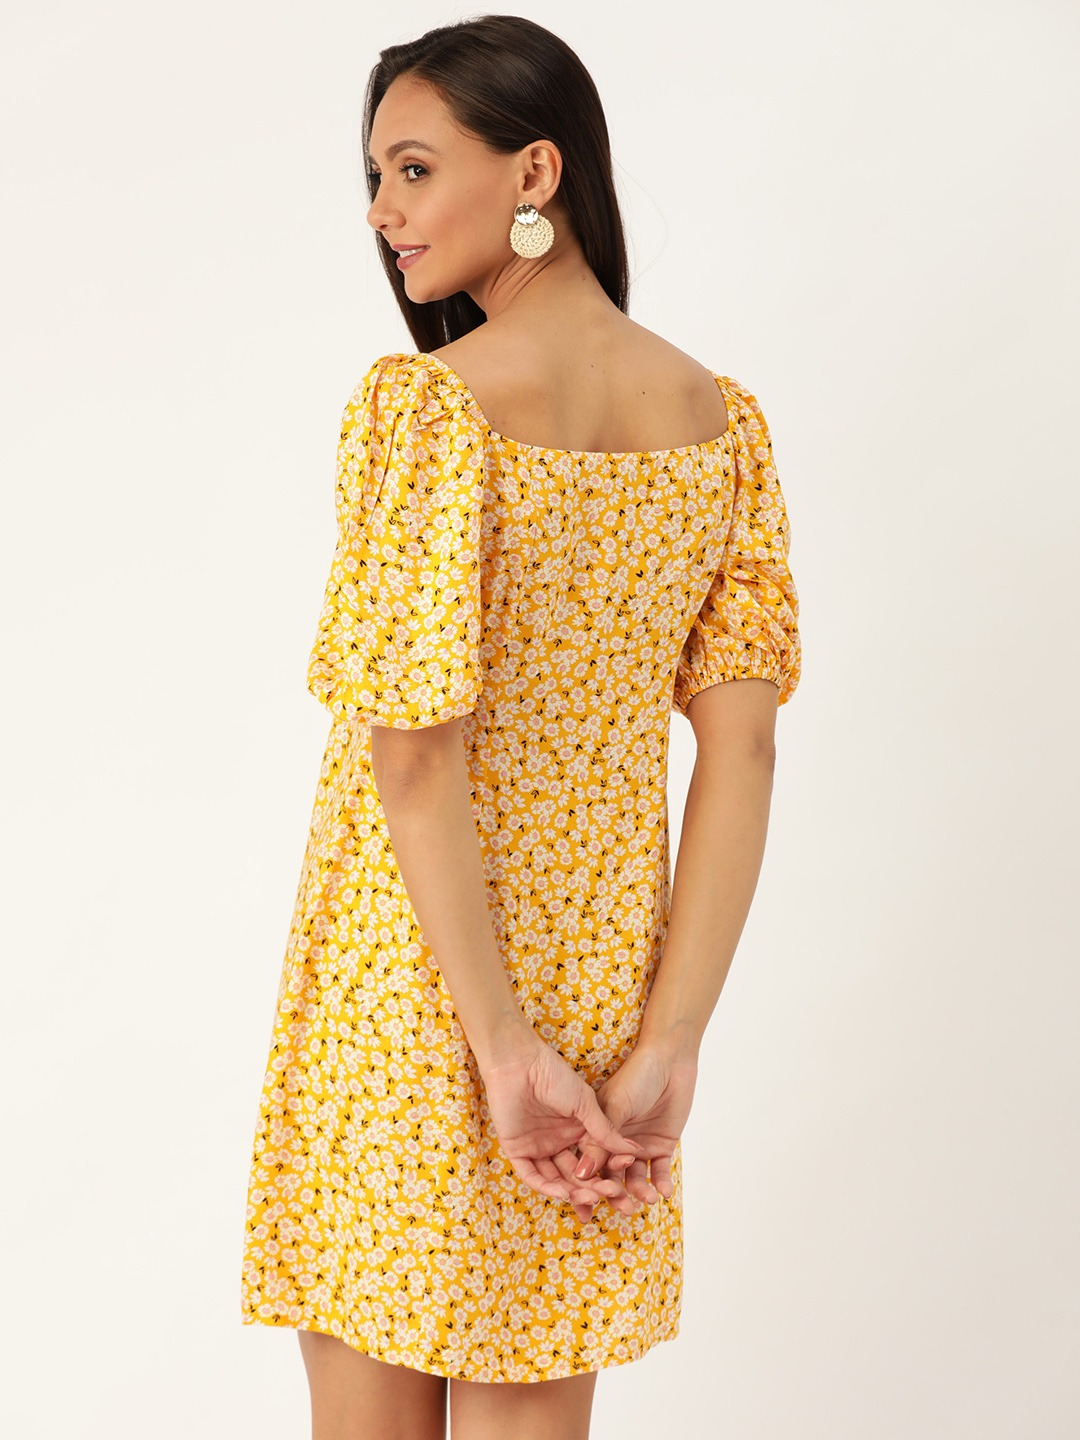 Dresses-Spring Sunshine Floral Dress3